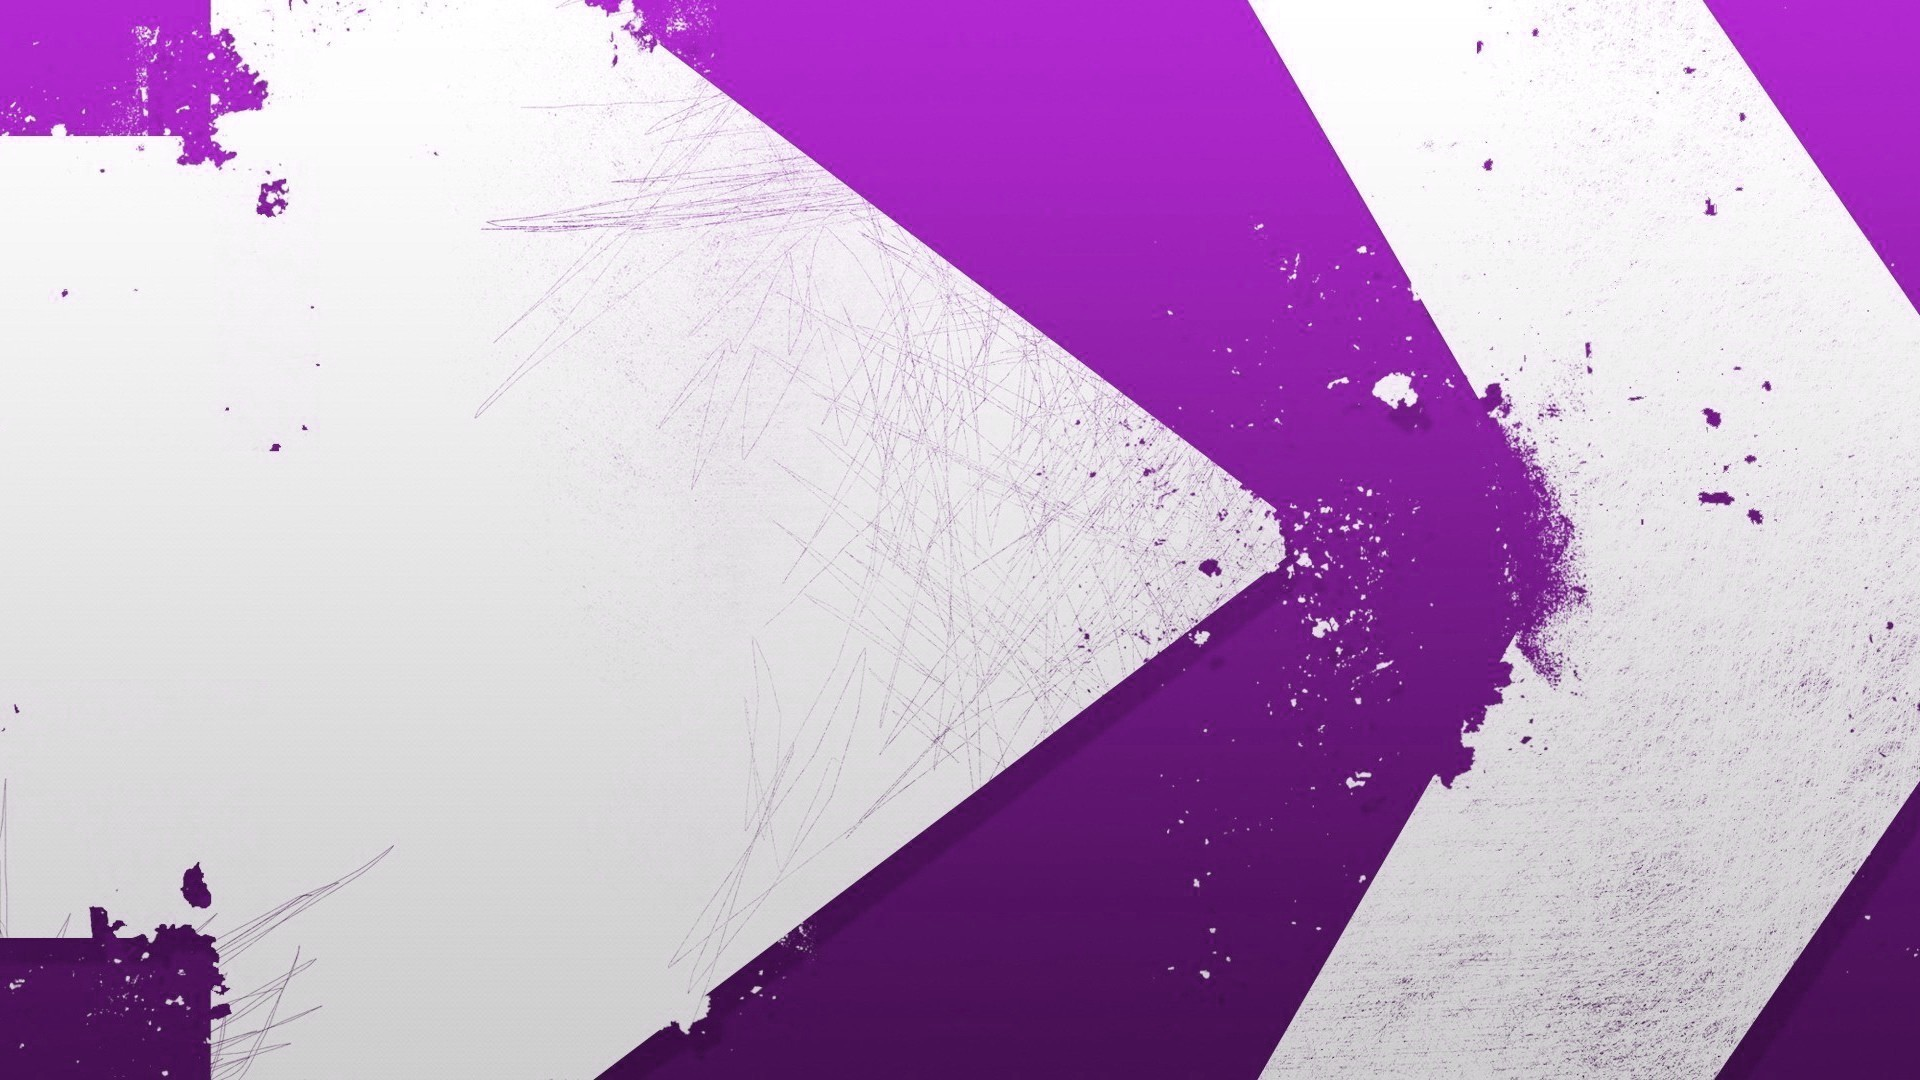 1920x1080 White Abstract Wallpaper Background Wallpapers Ideas Painting Design Purple  Paint Arrows Home Decorators Outlet Decor Magazines Pinterest